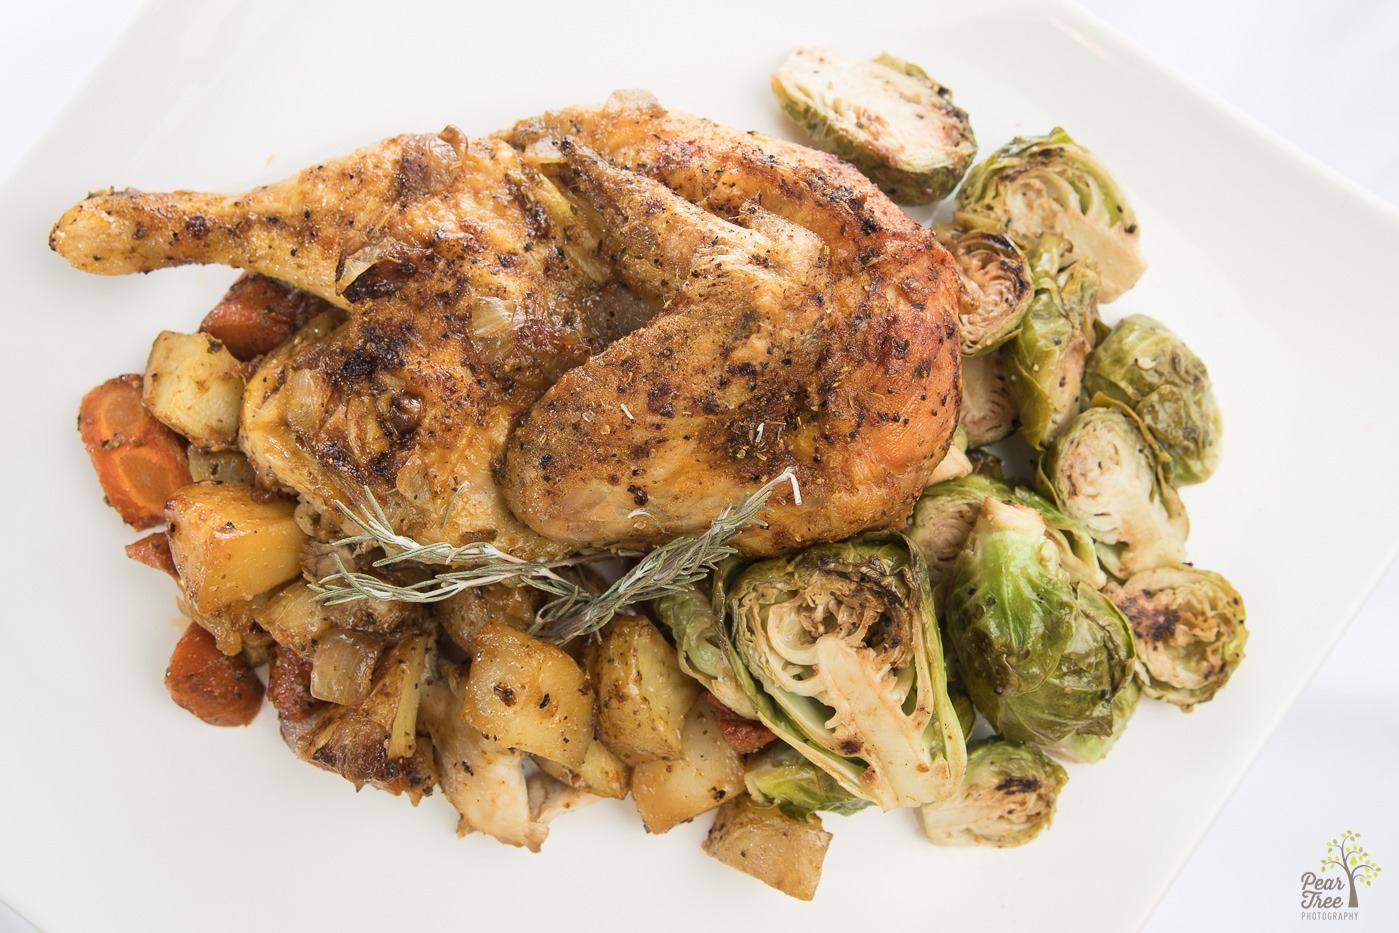 Roasted chicken with brussel sprouts, carrots, and potatoes made by caterer Divine Taste of Heaven.